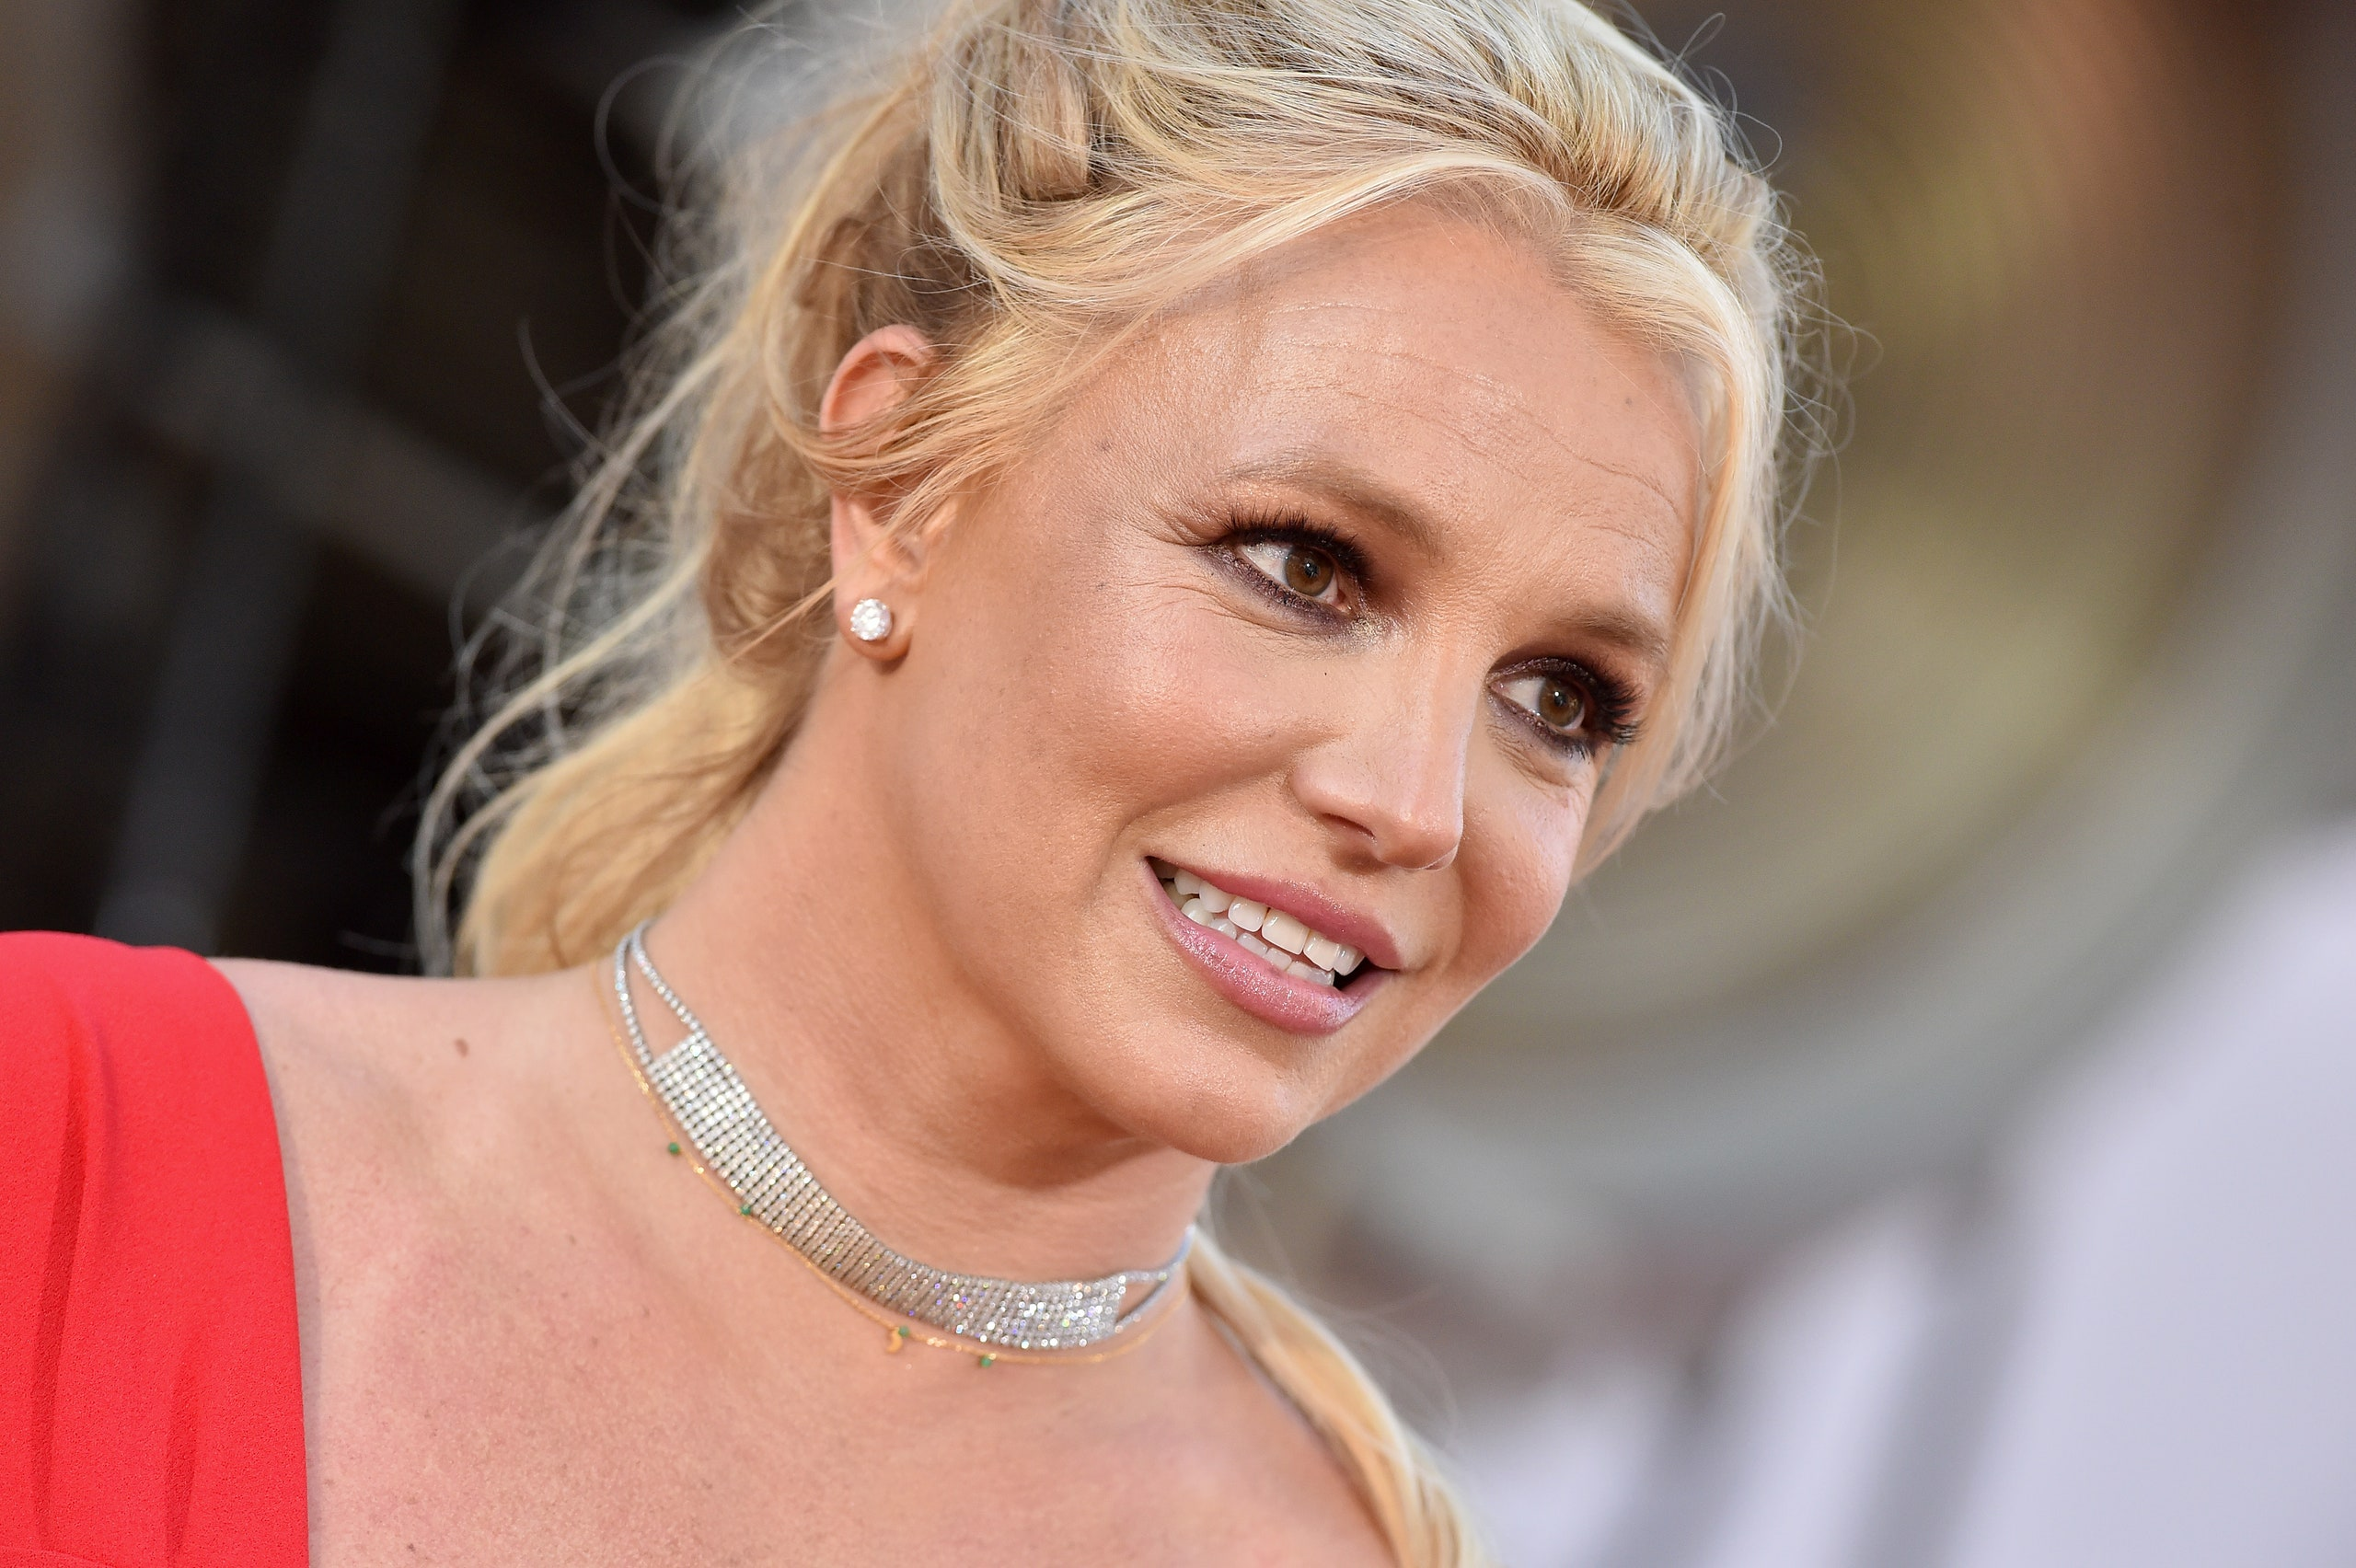 New twist comes up in Britney Spears' Conservatorship battle